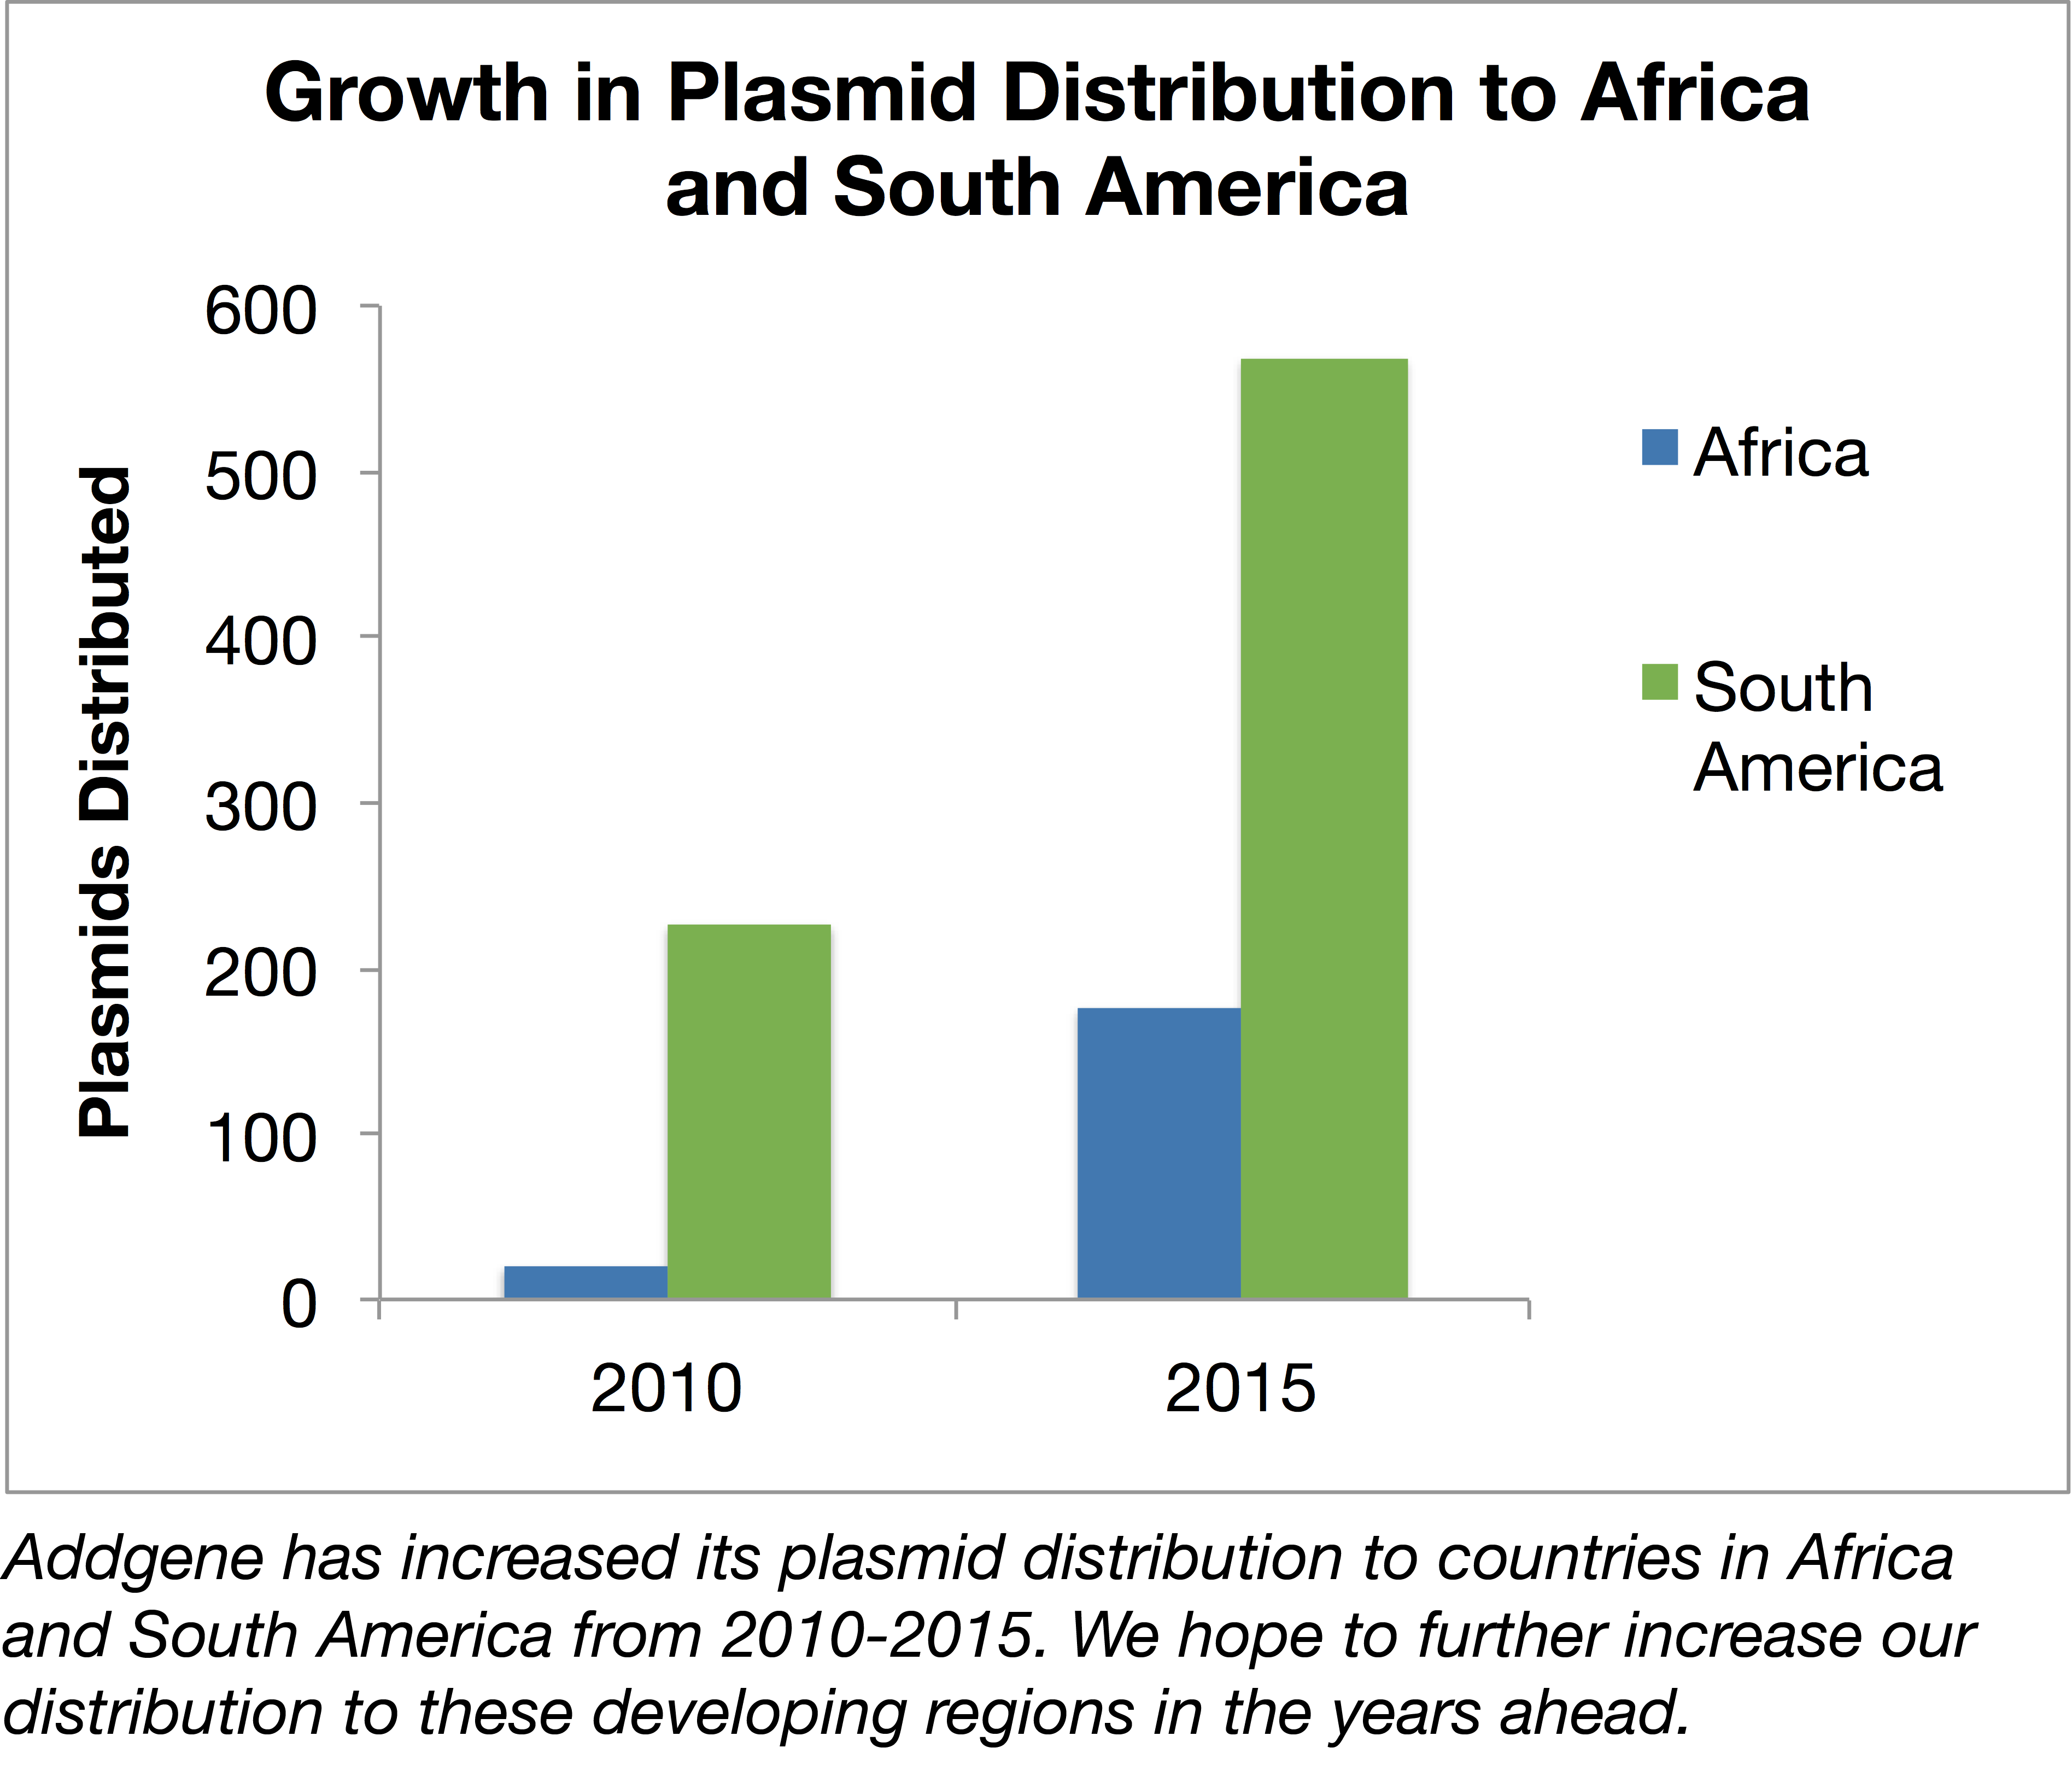 Addgene Plasmid distribution growth in Africa and South America 2010-2015